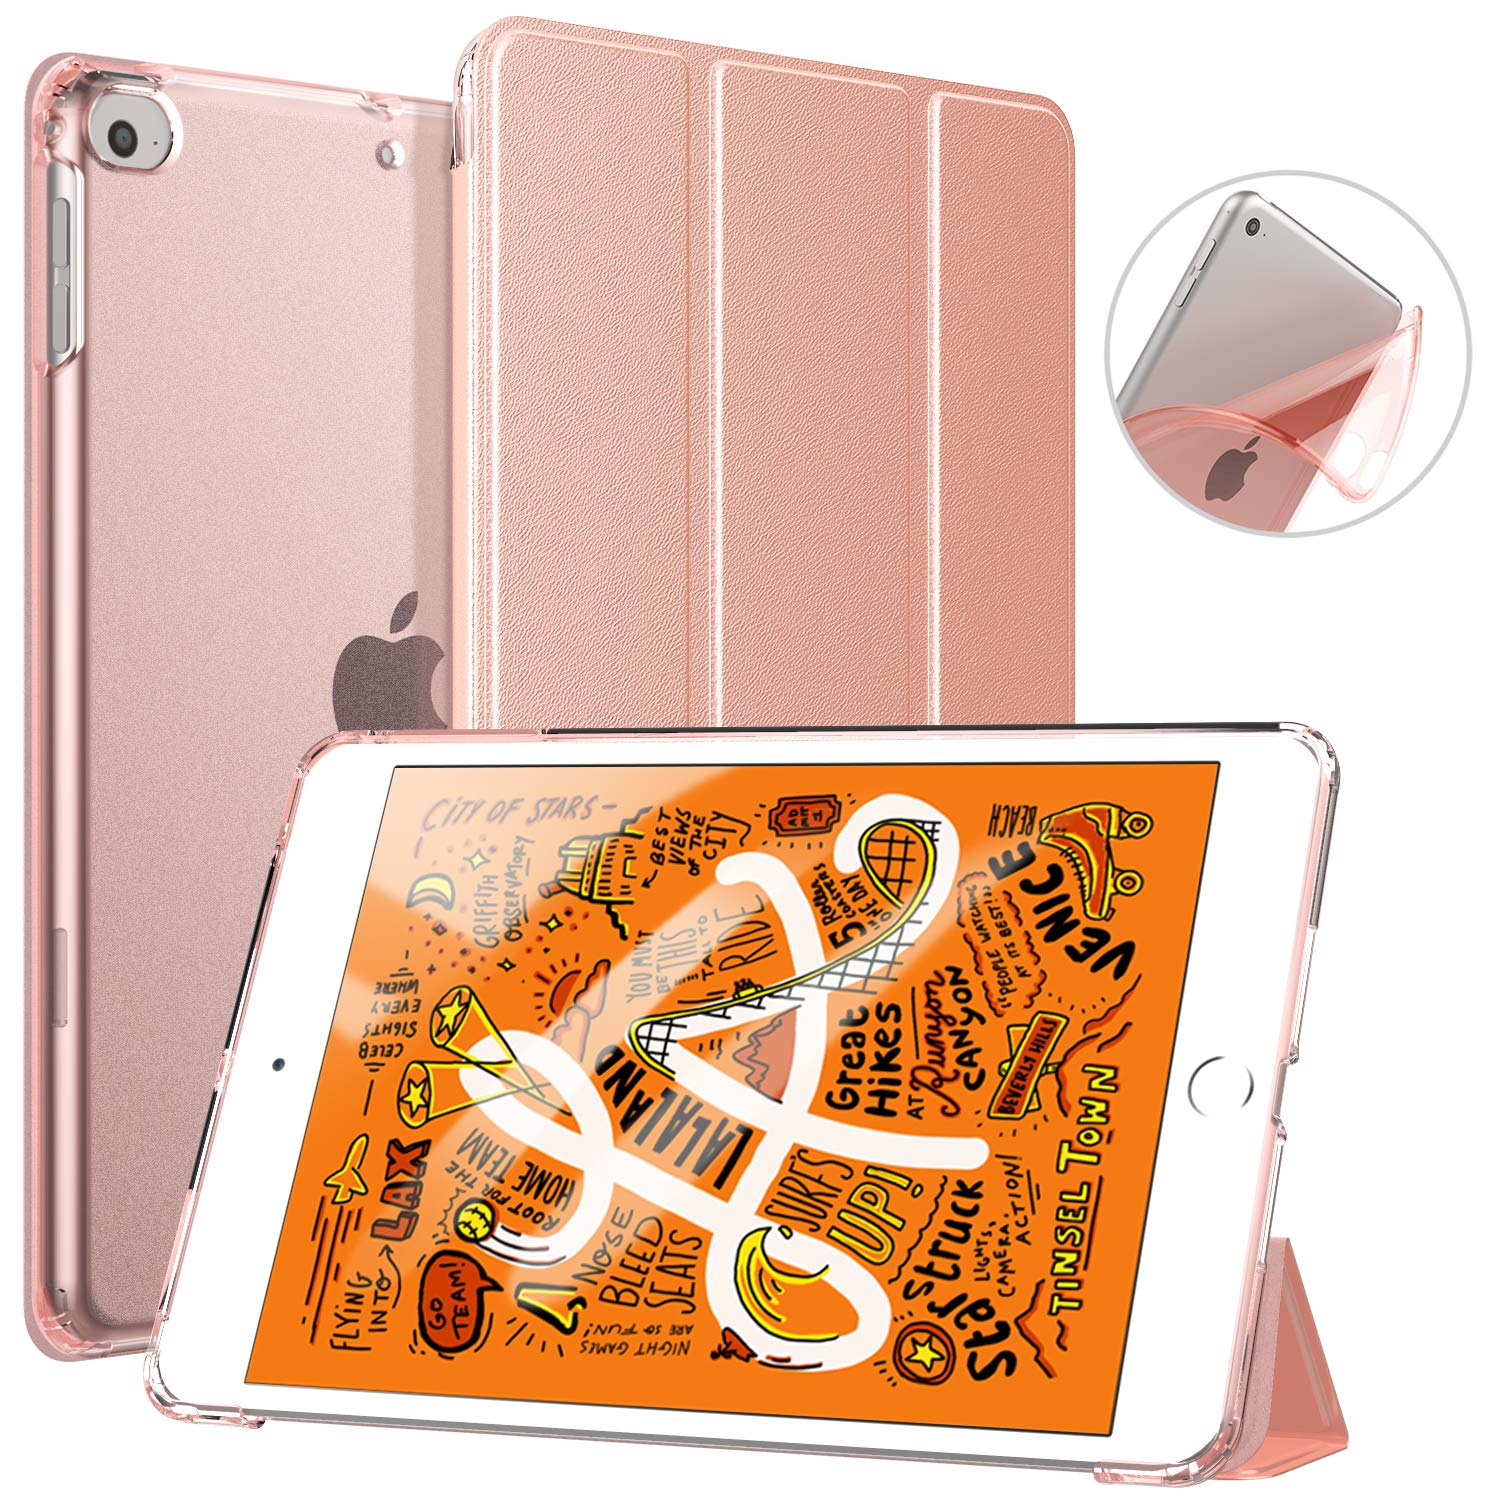 TiMOVO Cover Compatible for New iPad Mini 5th Generation 2019 Case, Slim Soft TPU Translucent Frosted Back Protector Cover Shell with Auto Wake/Sleep, Smart Cover Fit iPad Mini 5 2019, Rose Gold